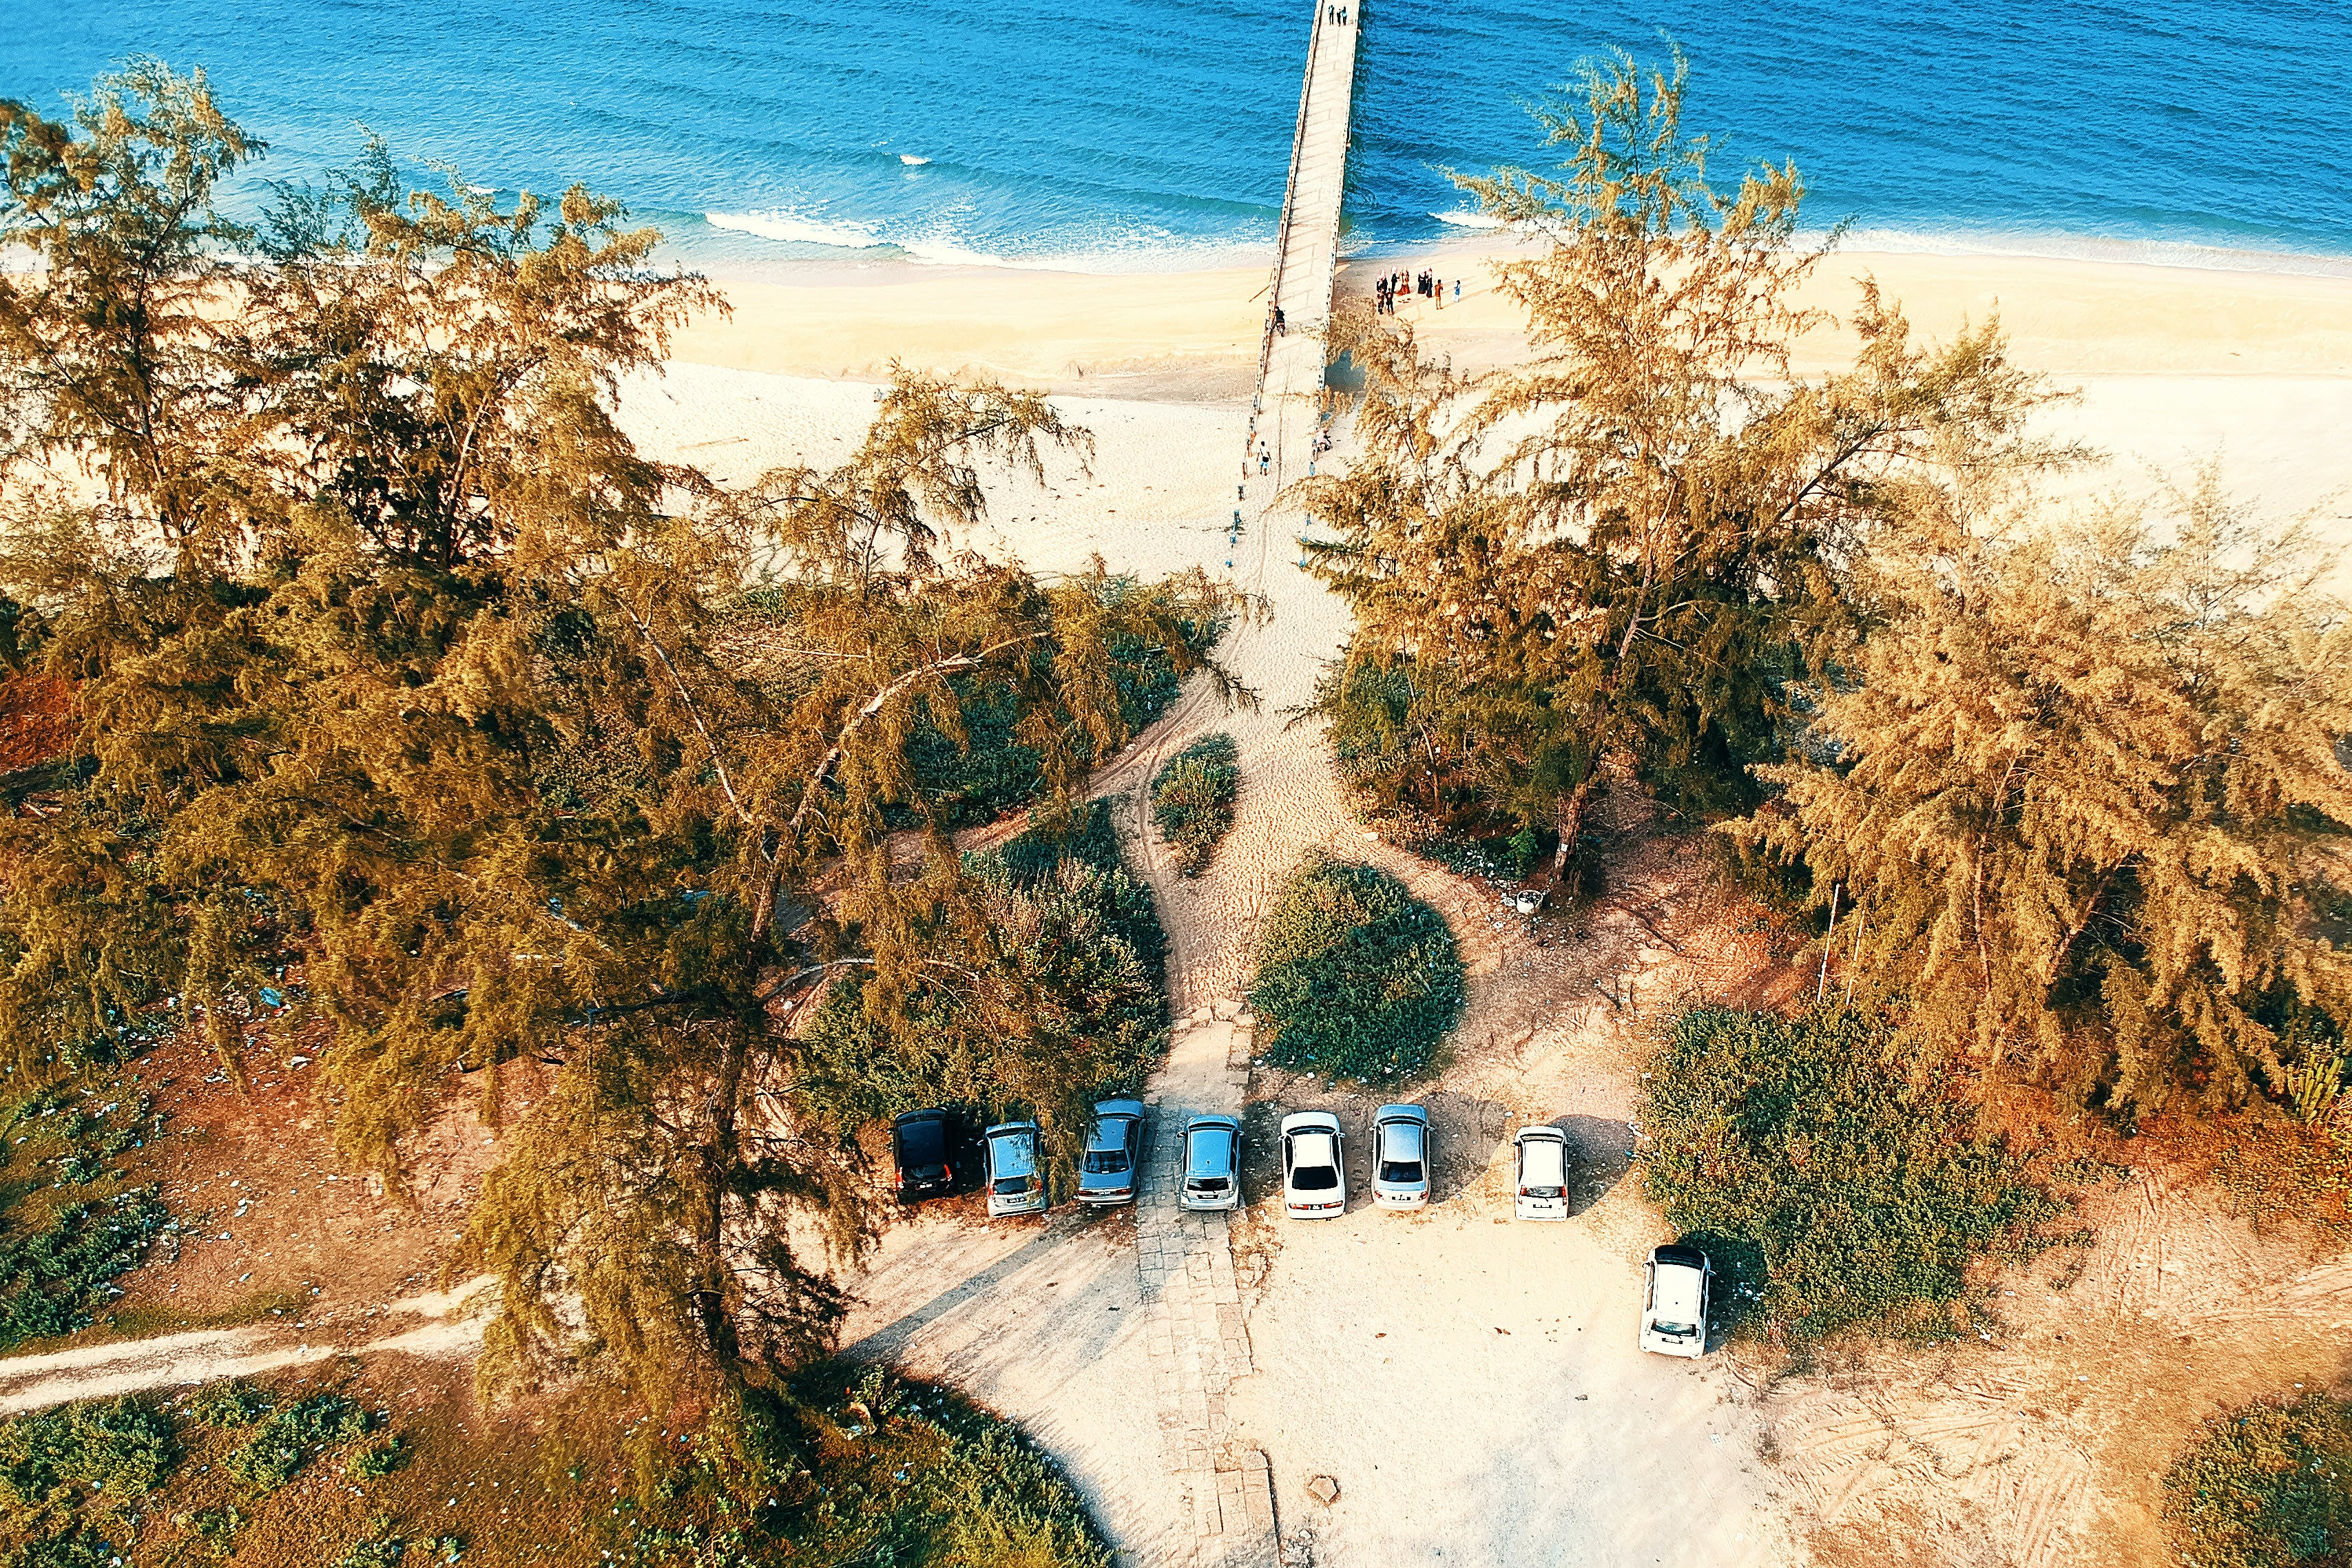 Seven Vehicle Park Under Green Leaf Tree Near Ocean Shore Aerial Photography